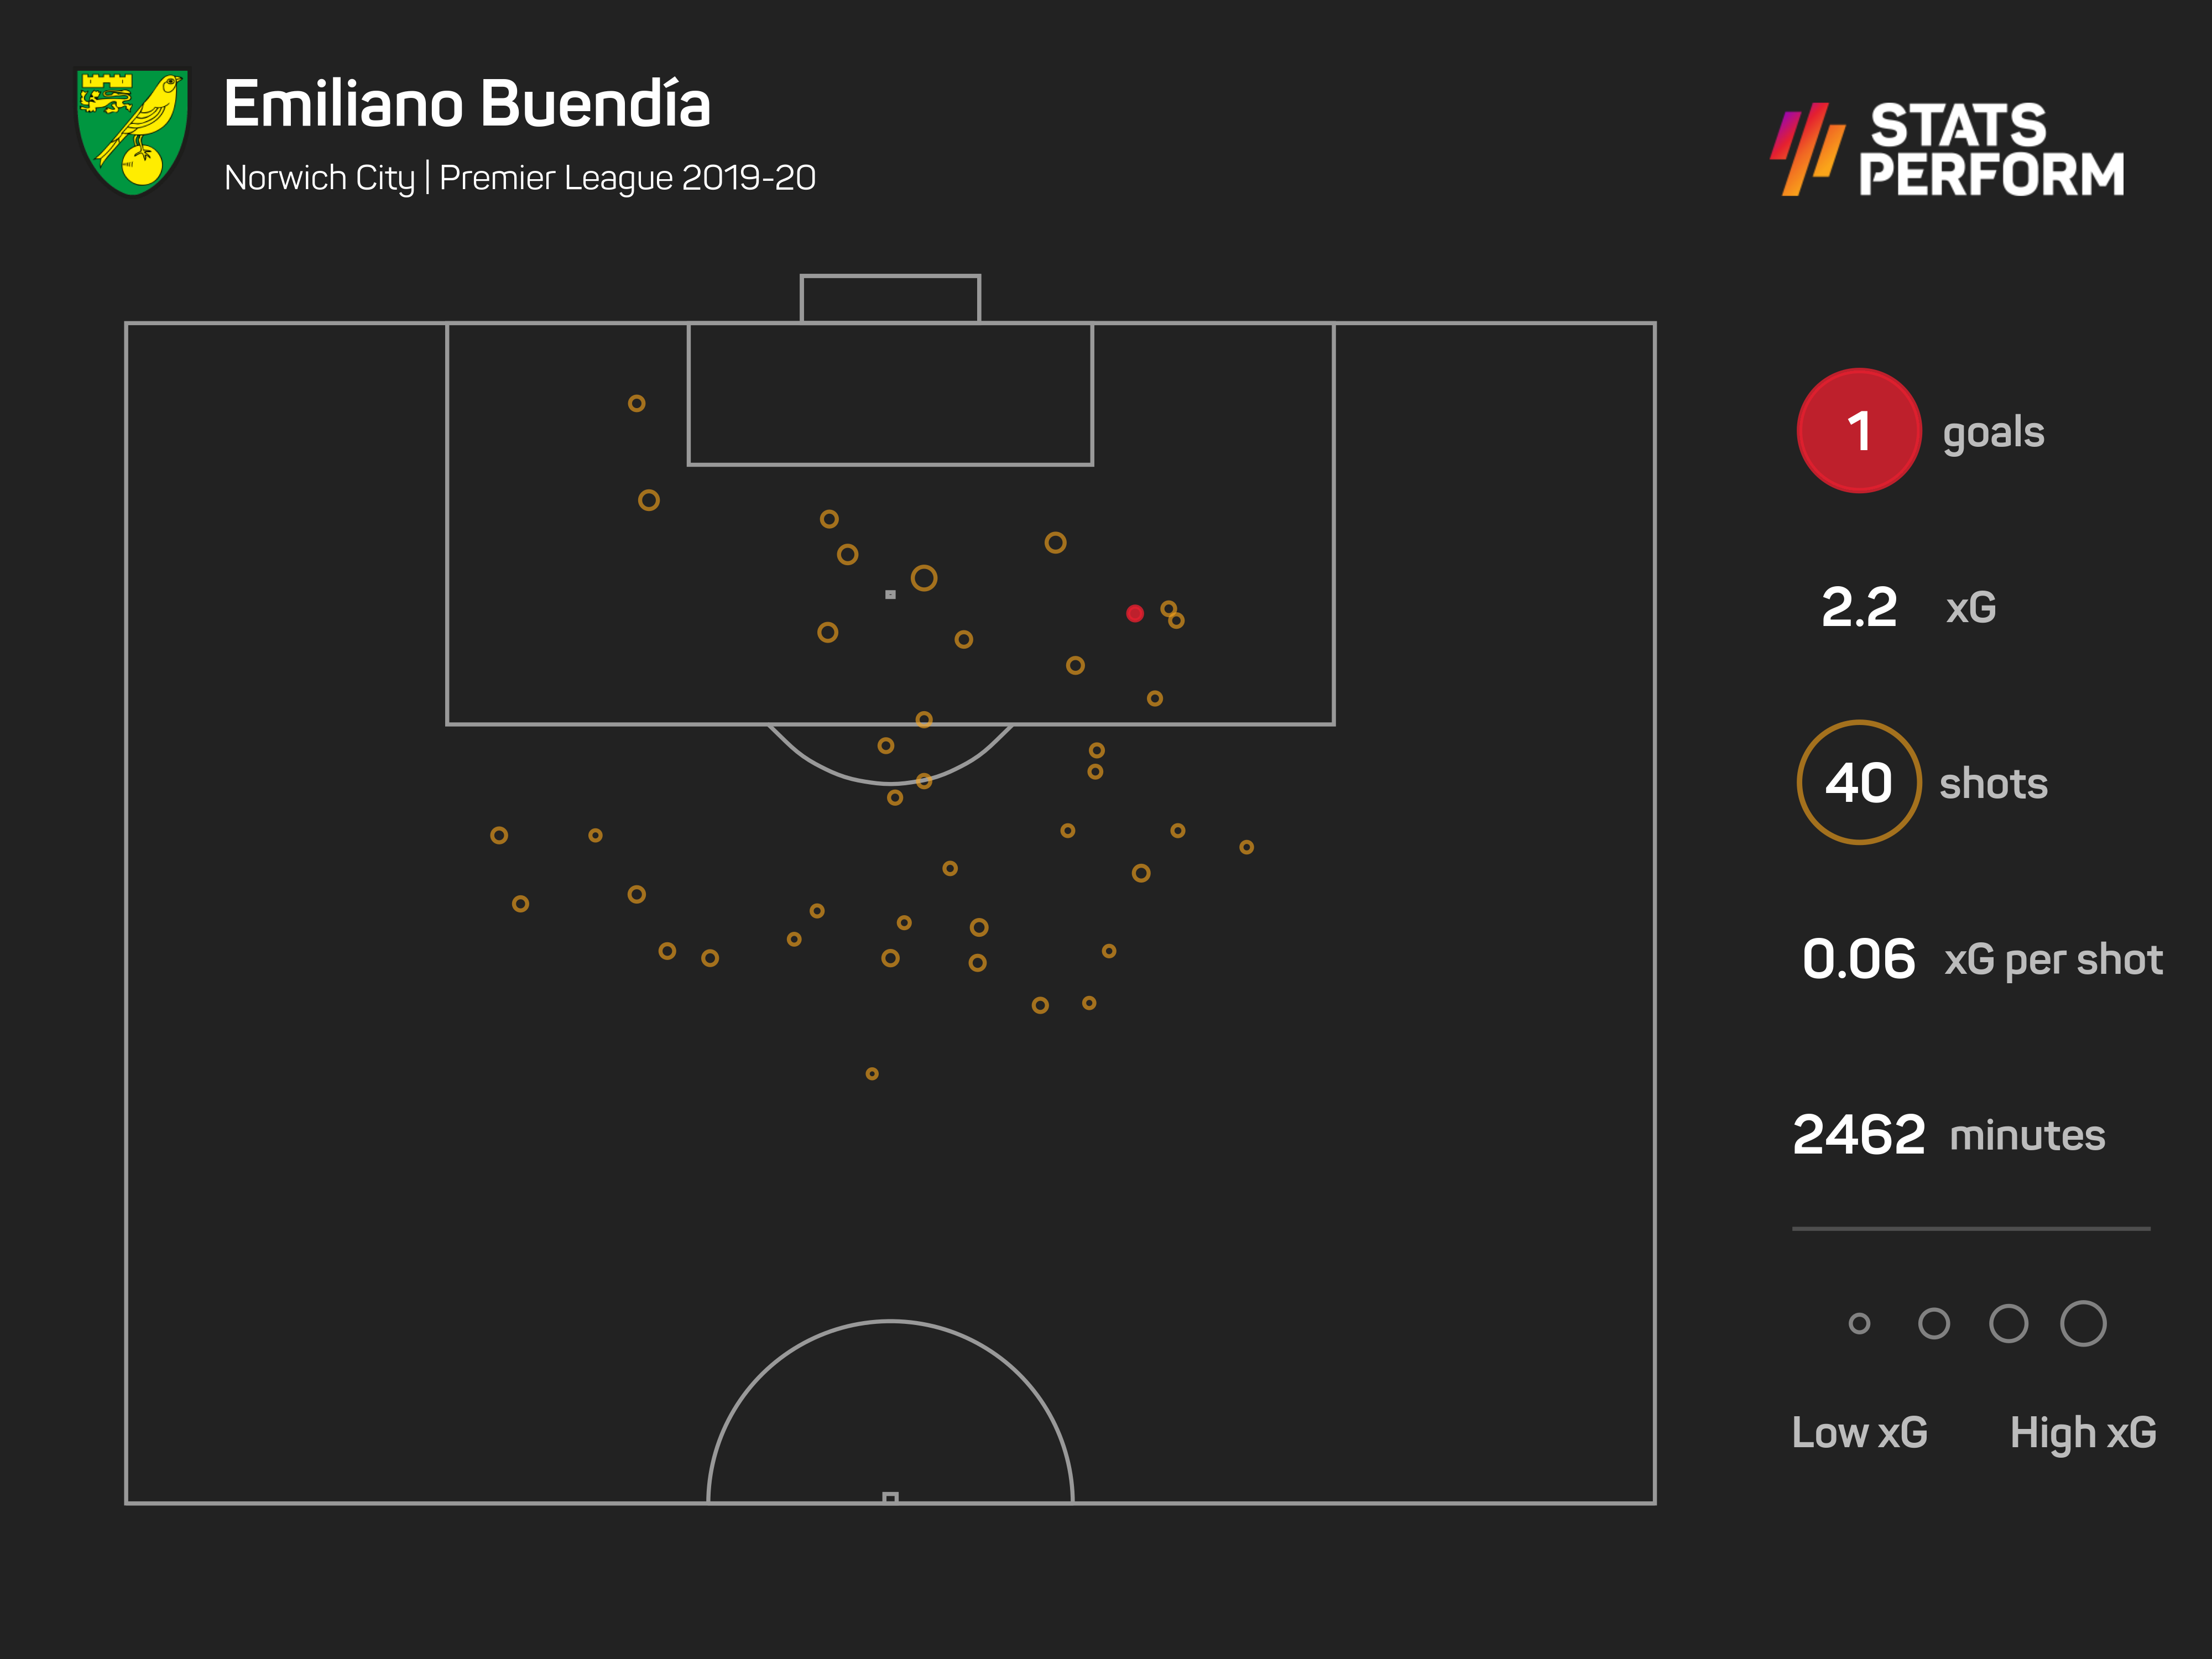 For all of his creative qualities, Buendia averaged less than 1.5 shots per 90 minutes in 2019-20